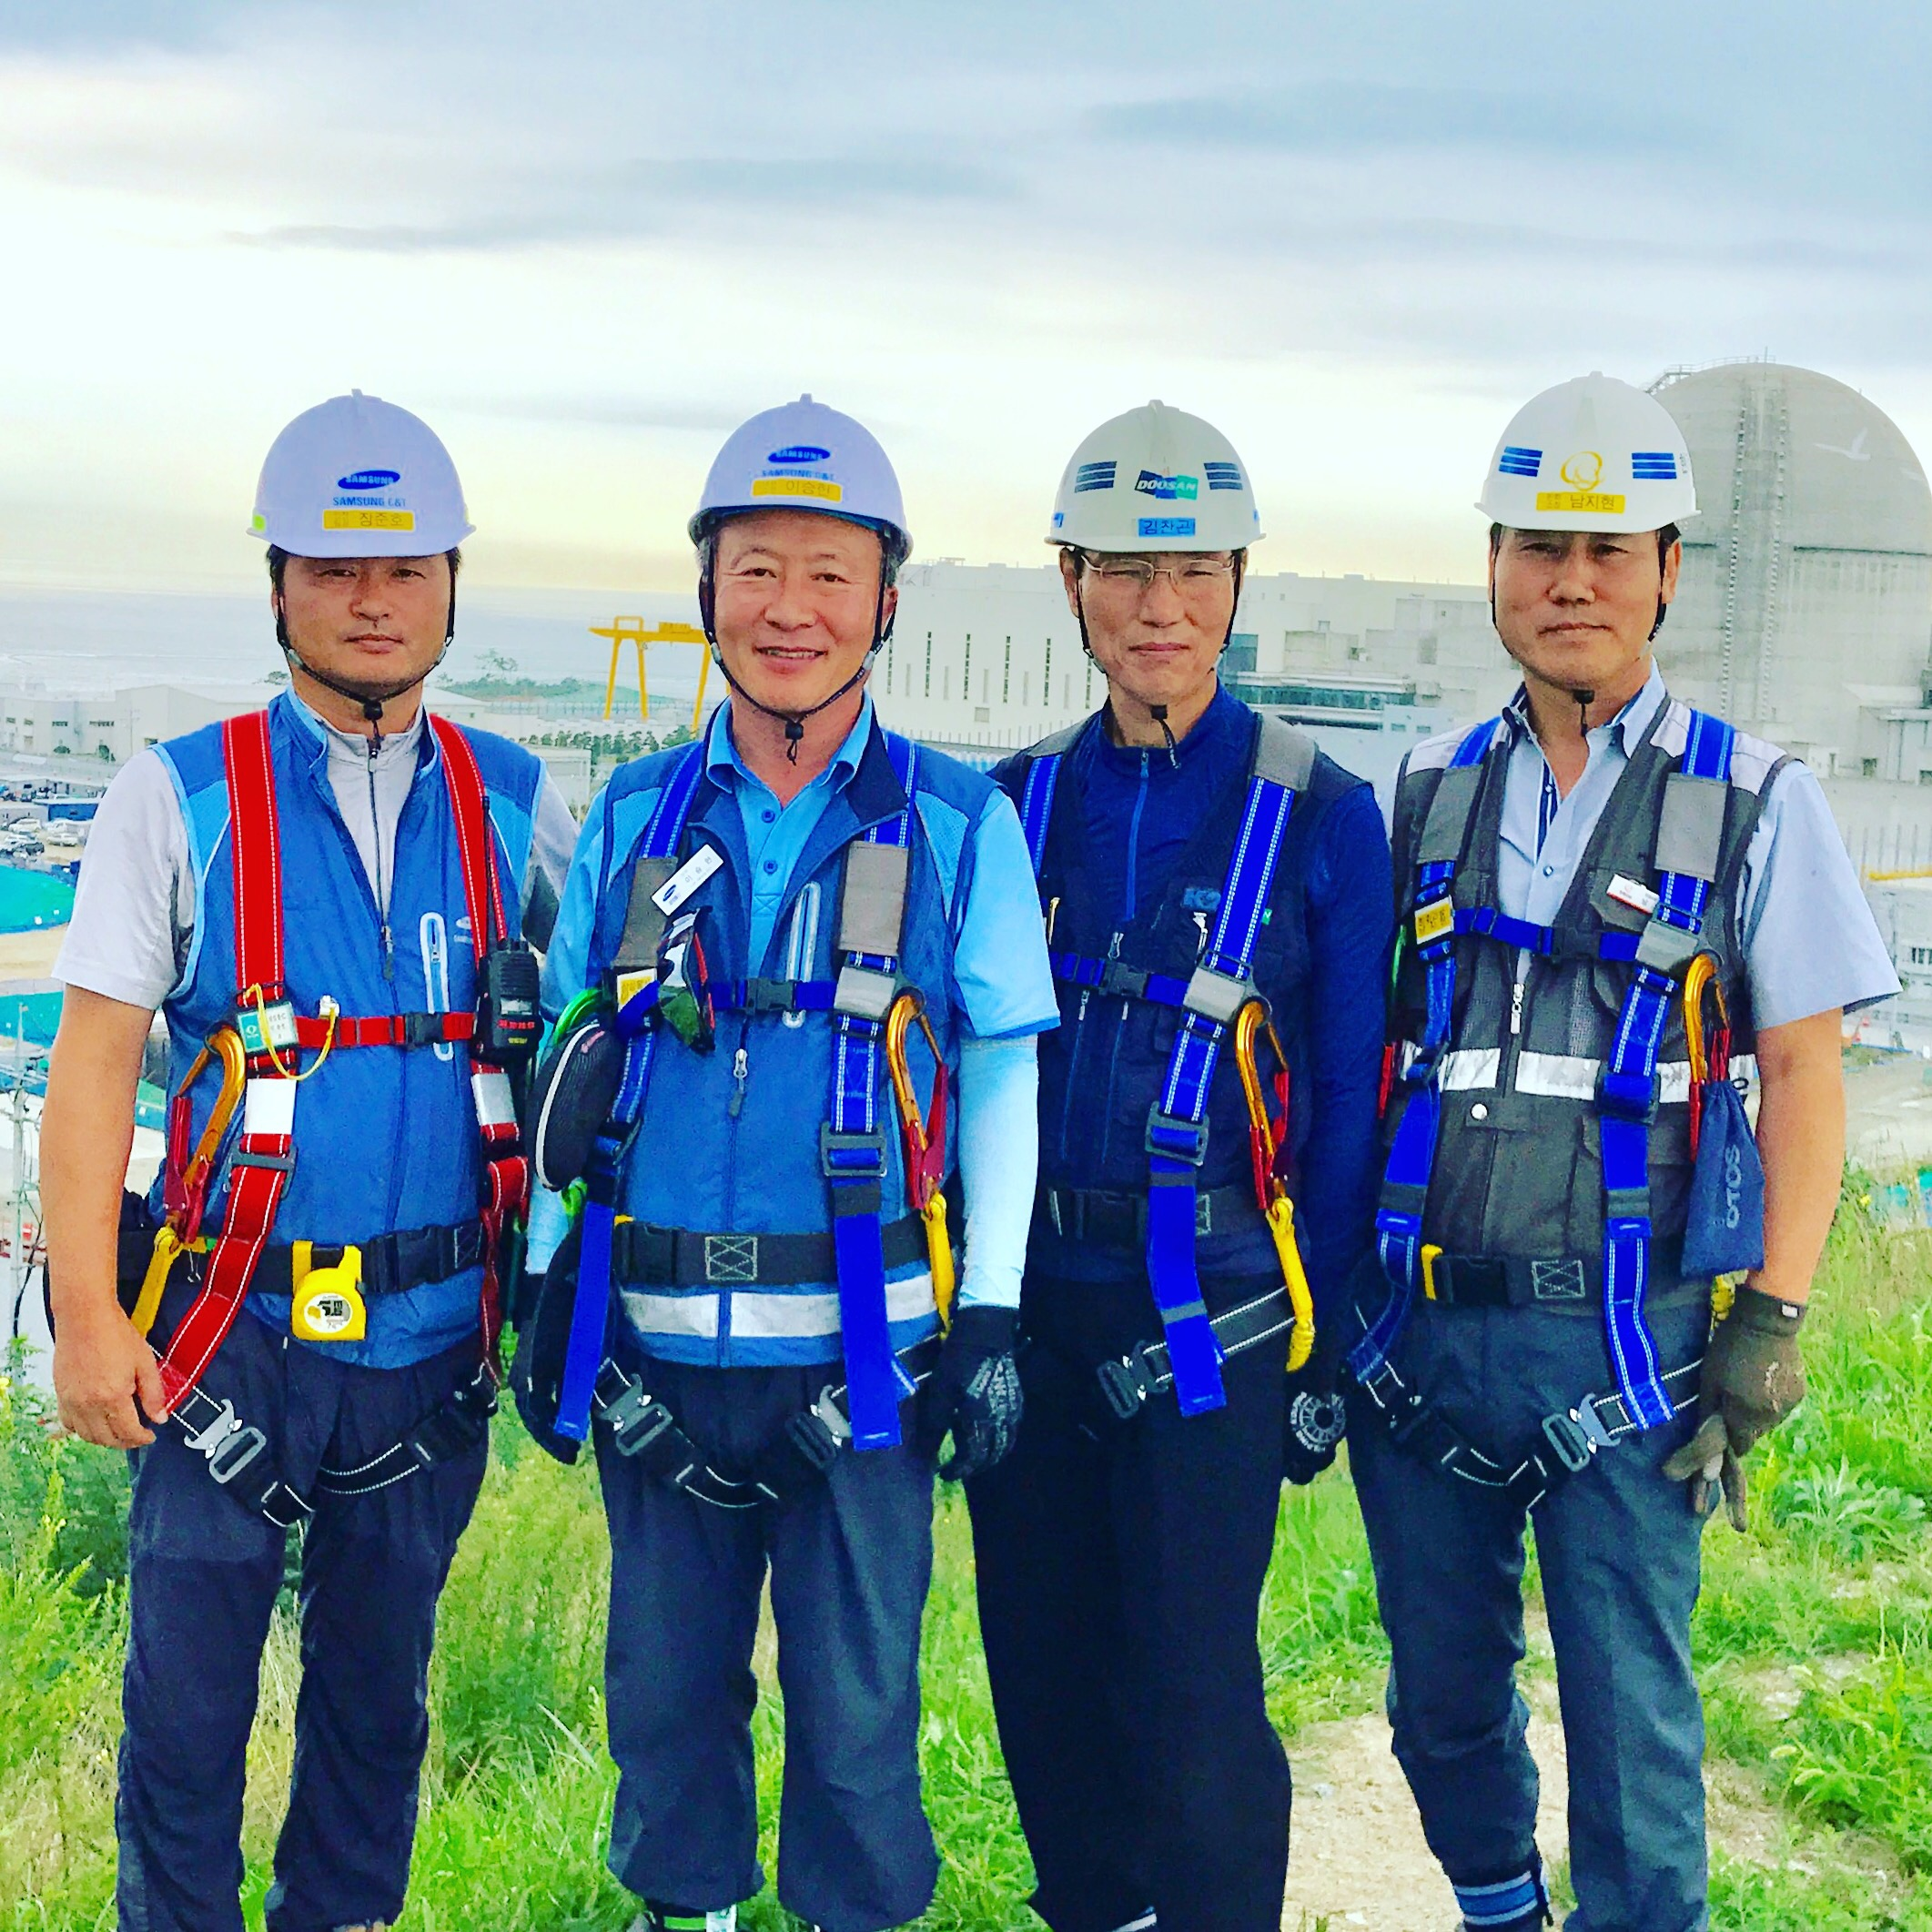 South Korea's top nuclear construction managers in front of Shin-Kori Reactors 3 and 4. Construction on Shin Kori-5 and Shin Kori-6 has been temporarily halted.